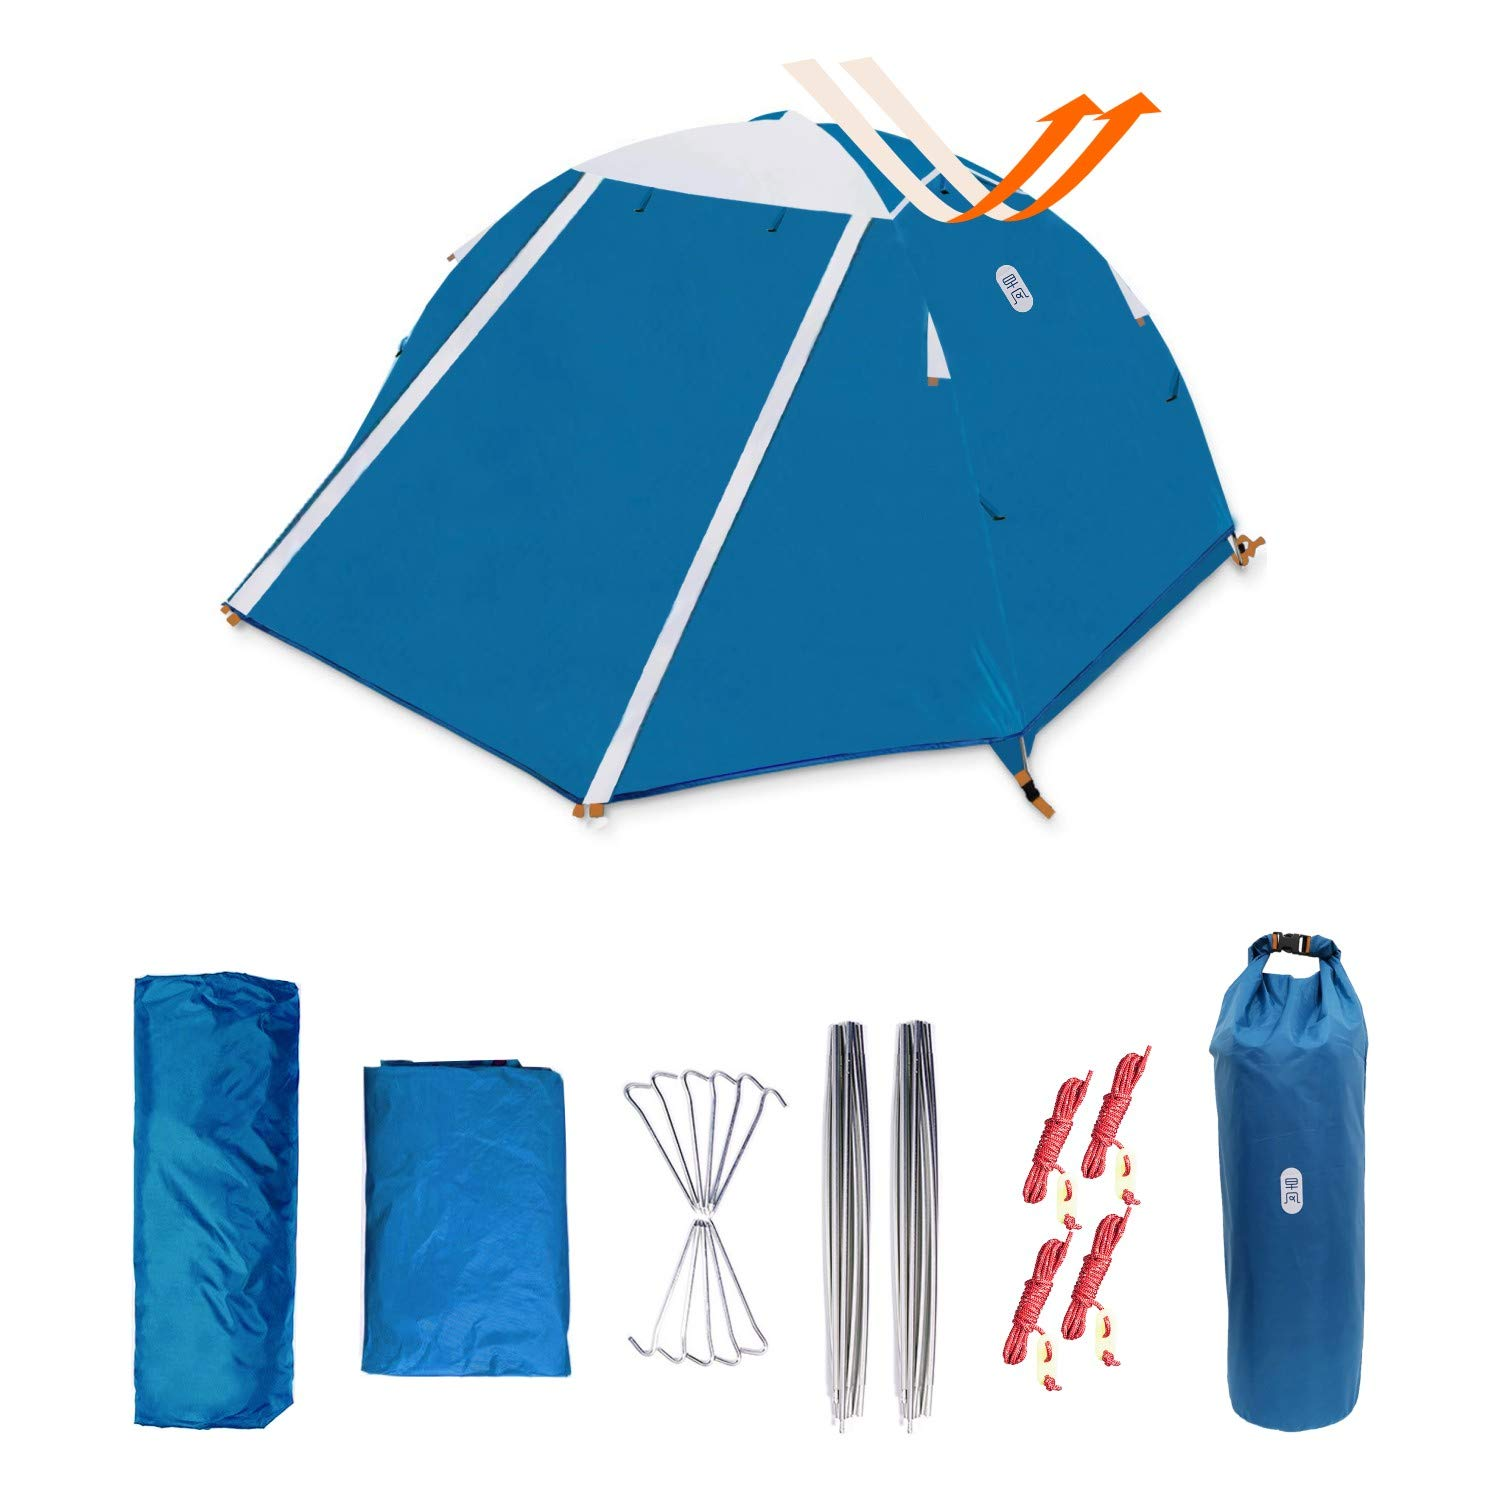 Zenph Backpacking Tent, 2 Person Ultralight Waterproof Camping Tent, Two Doors Easy Setup 4 Season Tent for Outdoor, Hiking Mountaineering